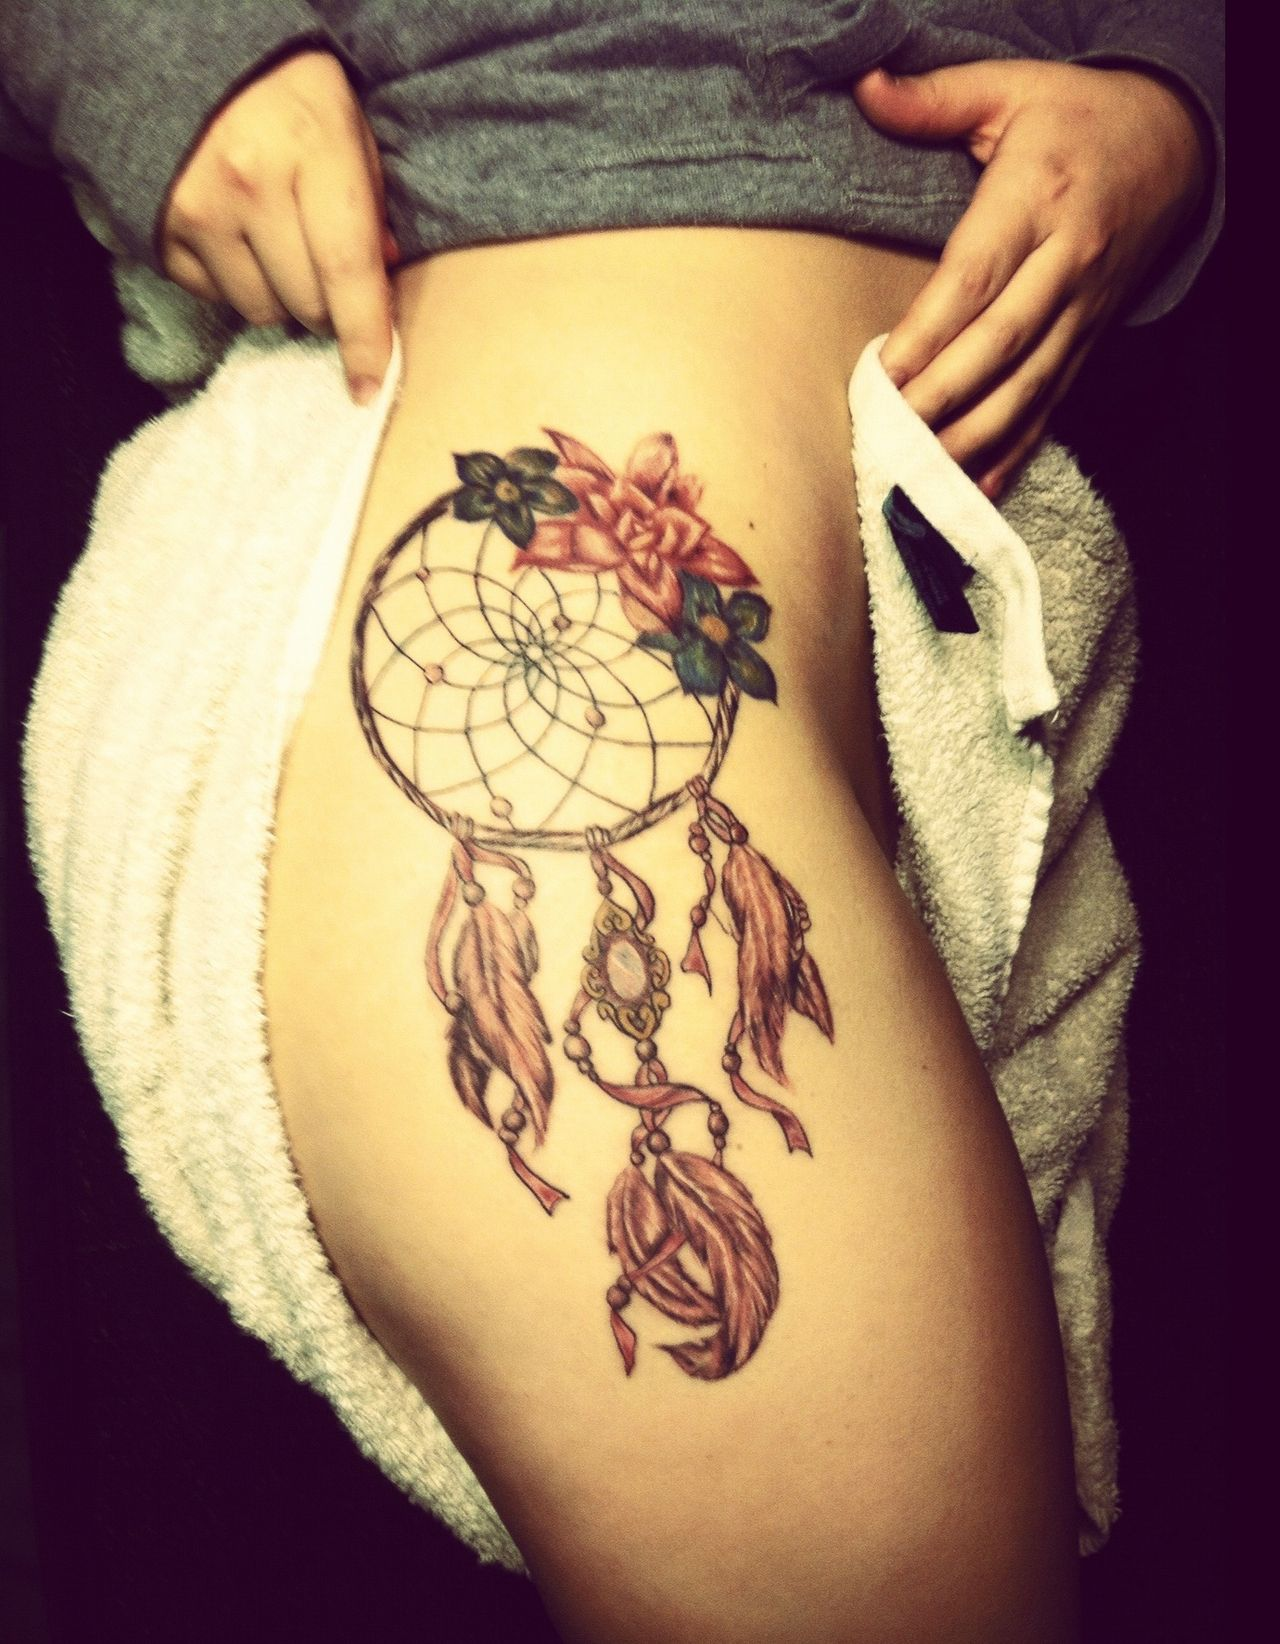 Dream Catcher Tattoo On Thigh Unique I Love This Dream Catcher Tattoo I Have One On My Shoulder Think I Decorating Inspiration